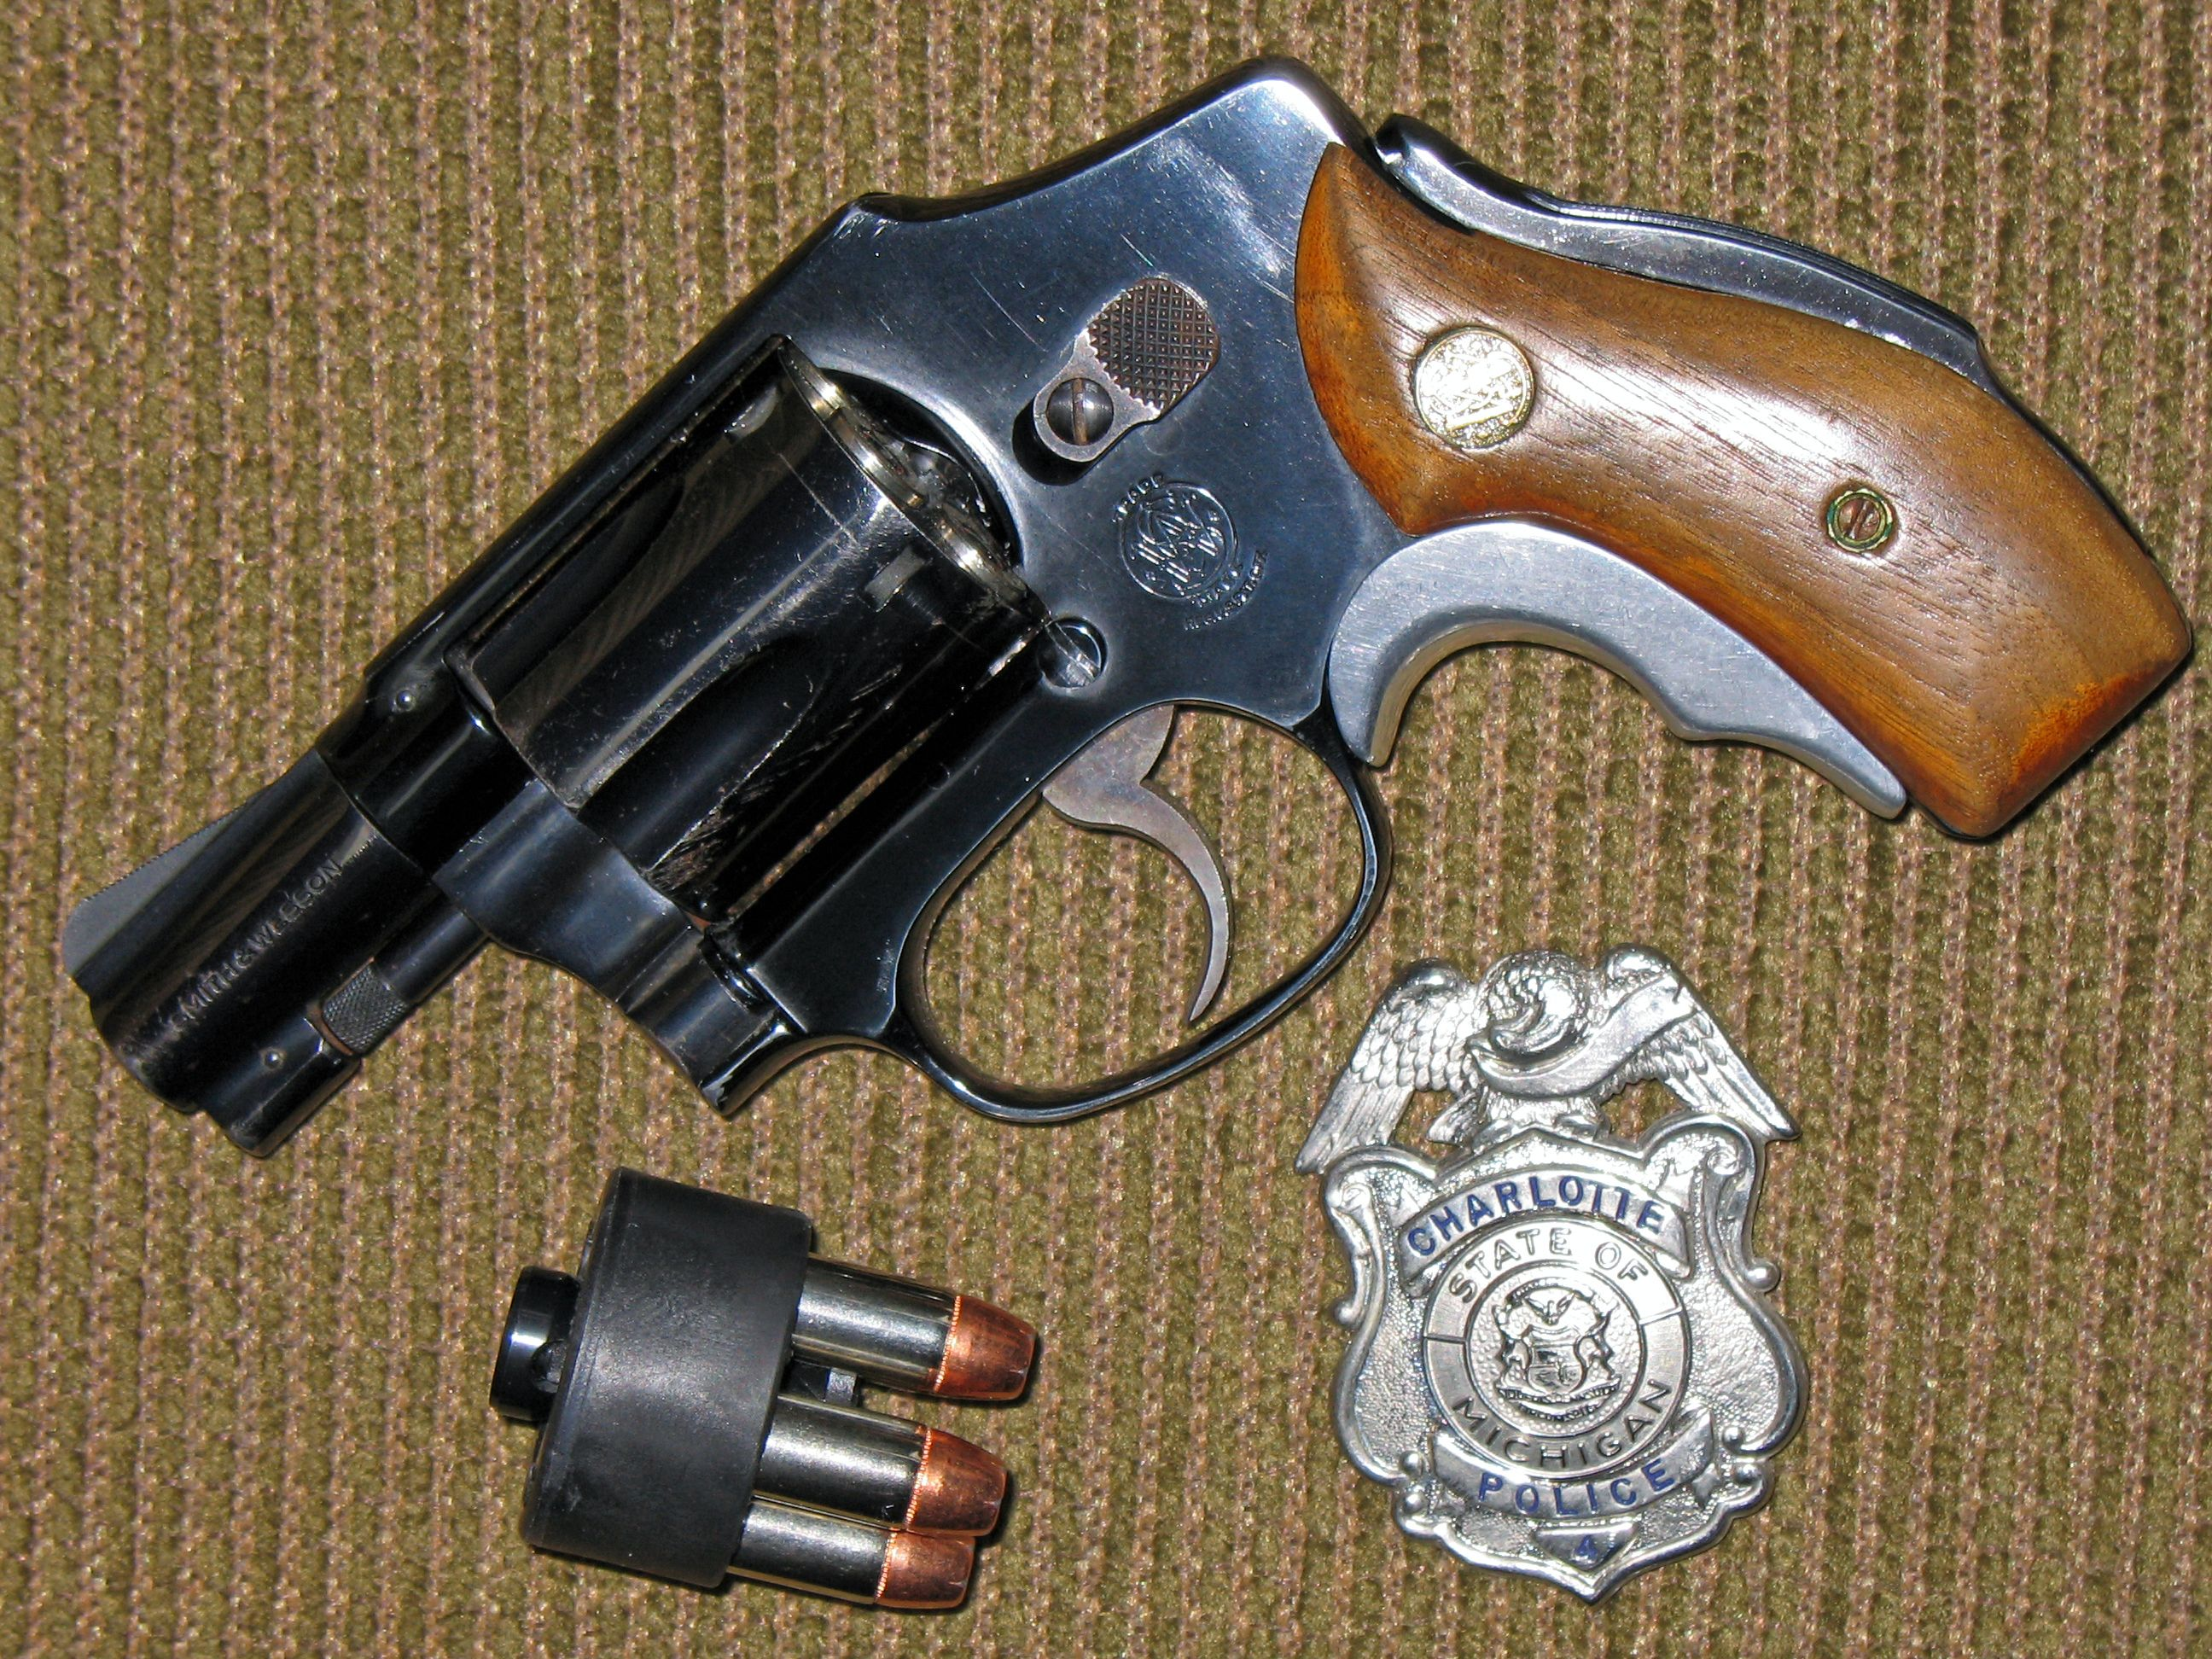 Smith & Wesson model 42 (.38 Special) with Tyler T-Grip